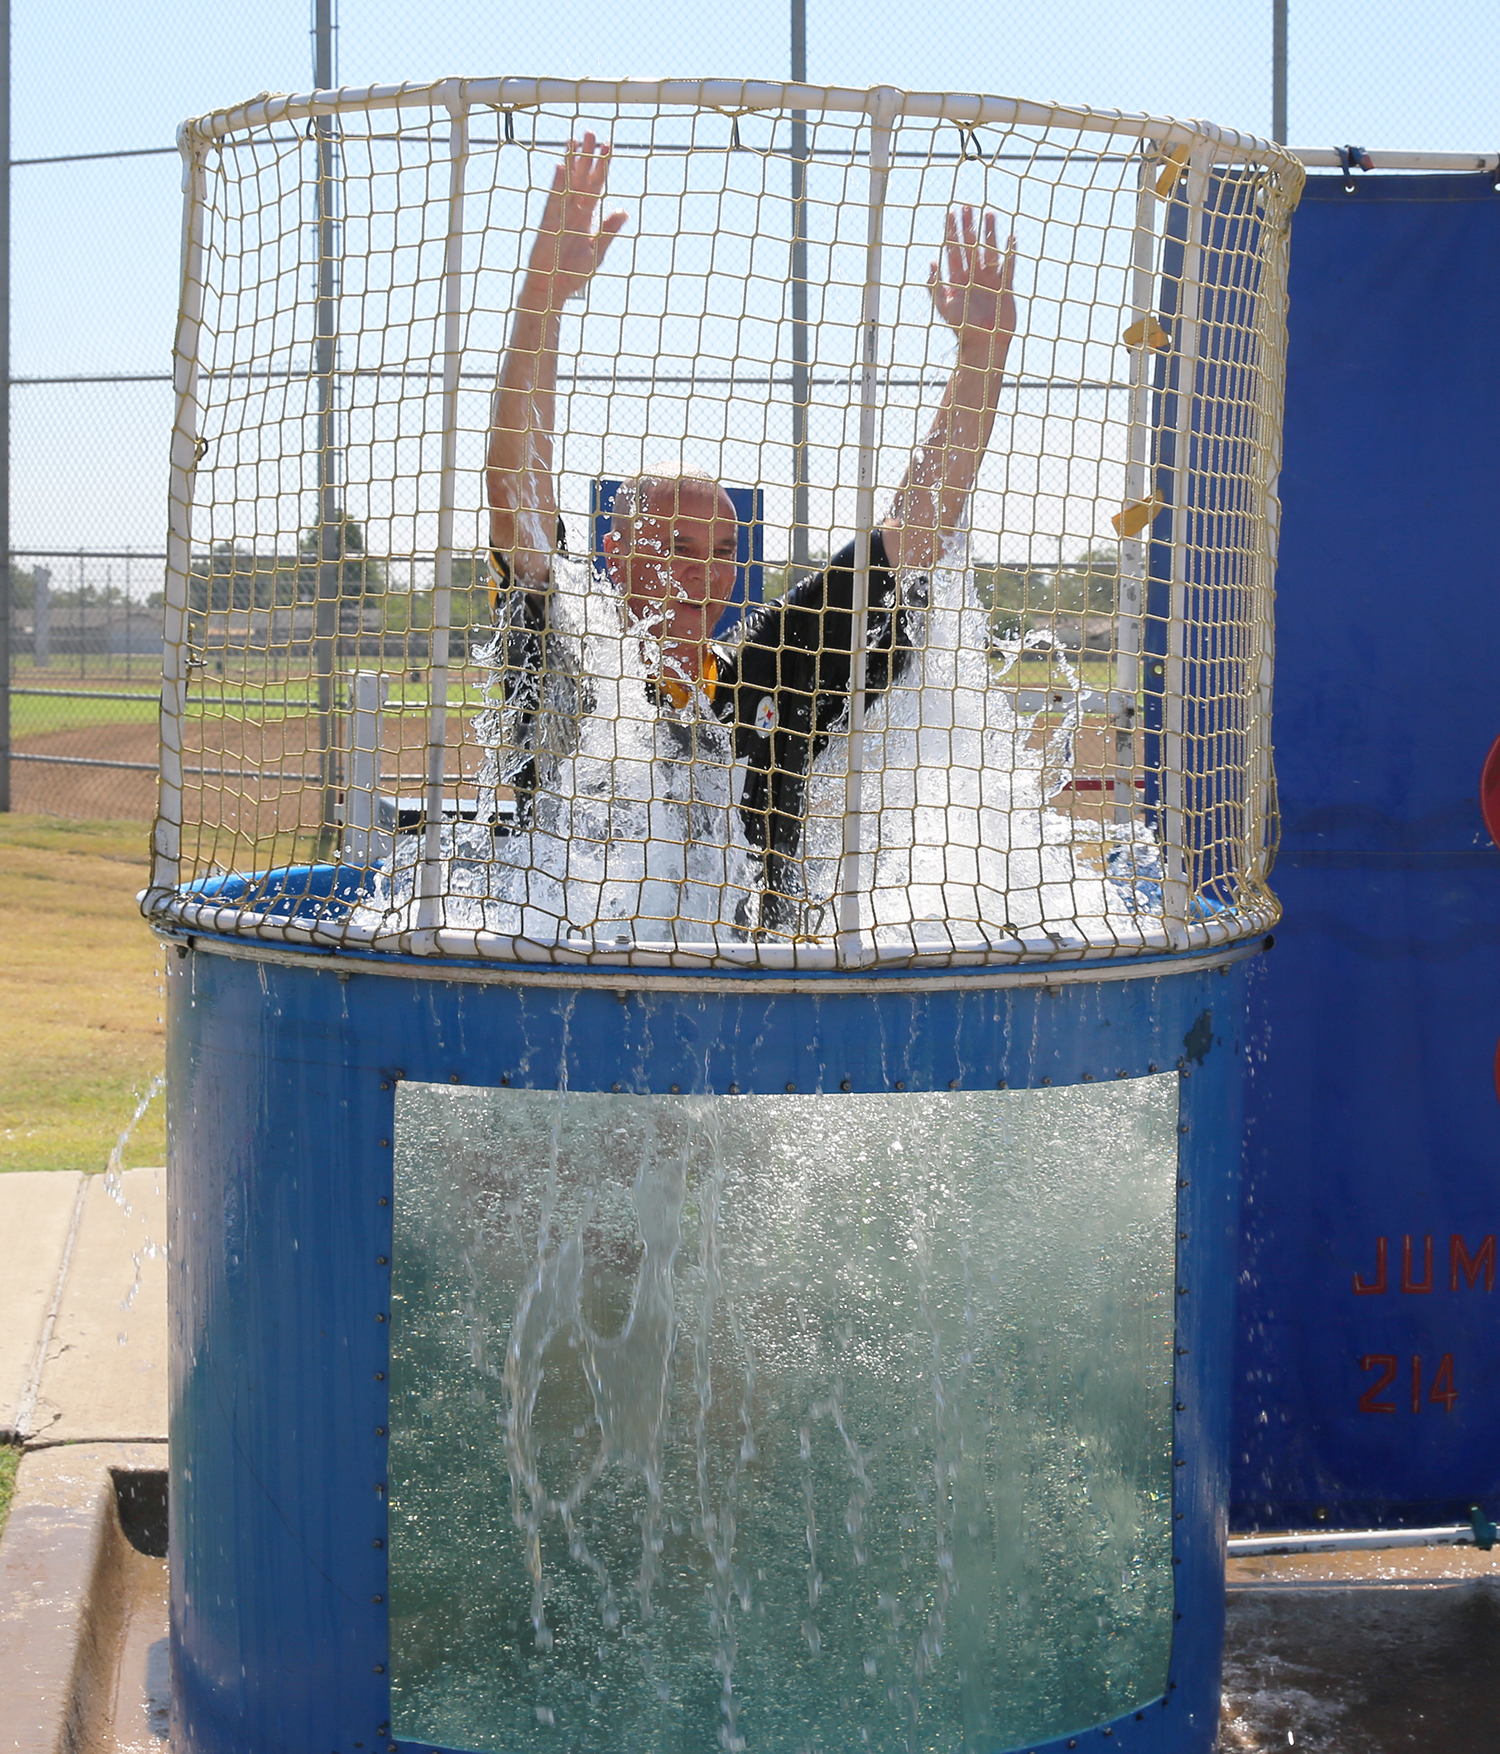 9-11-15 United Way Dunk Tank-Mesquite Asst City Mgr Jerry Dittman dunked.jpg